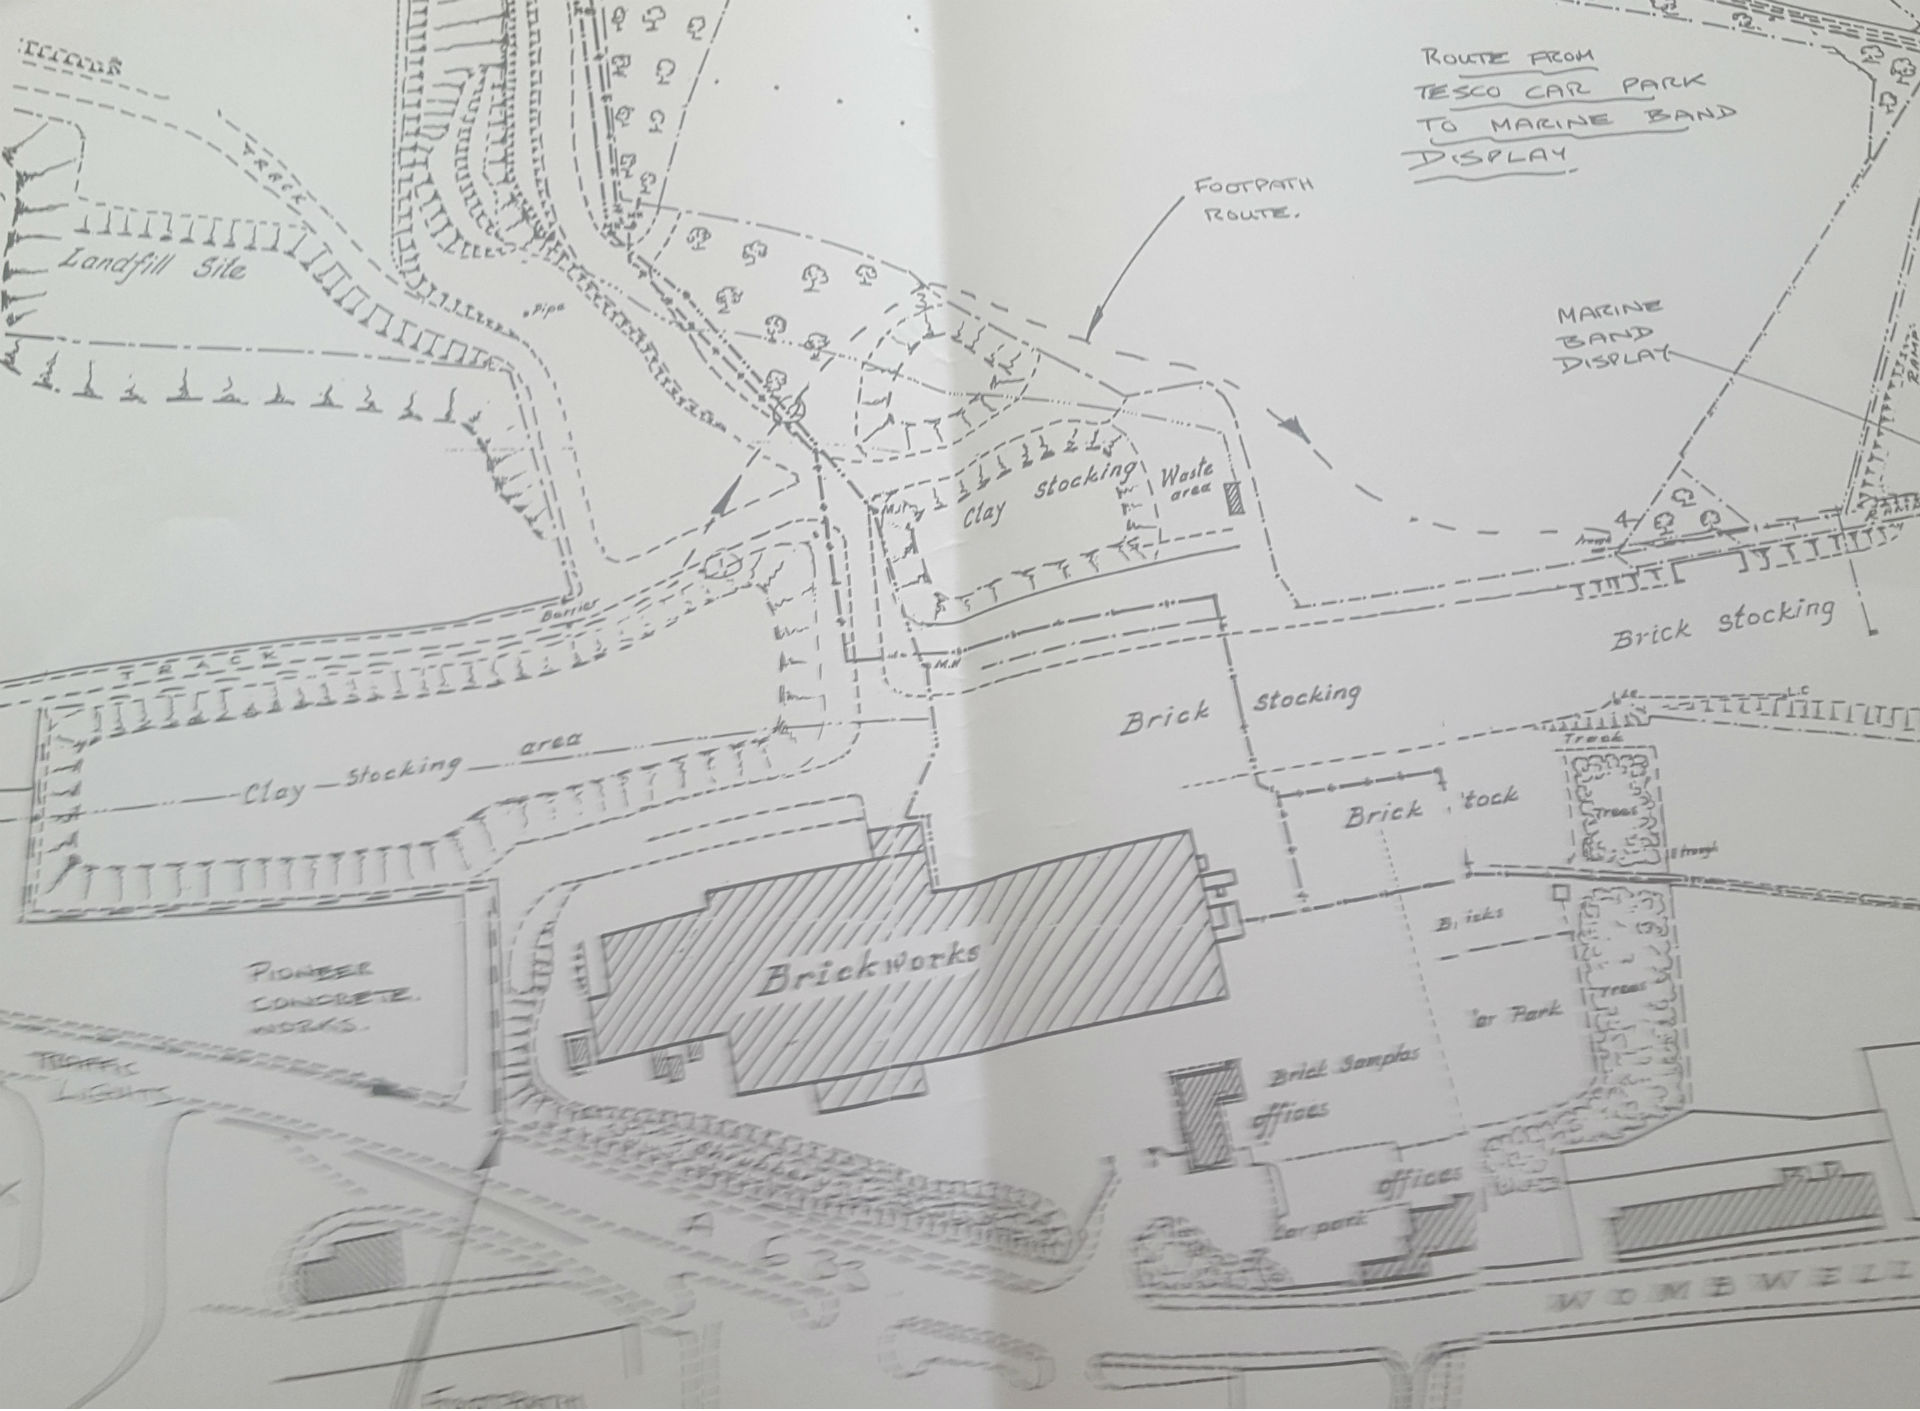 Site plan of Stairfoot Brickworks circa late 1980s